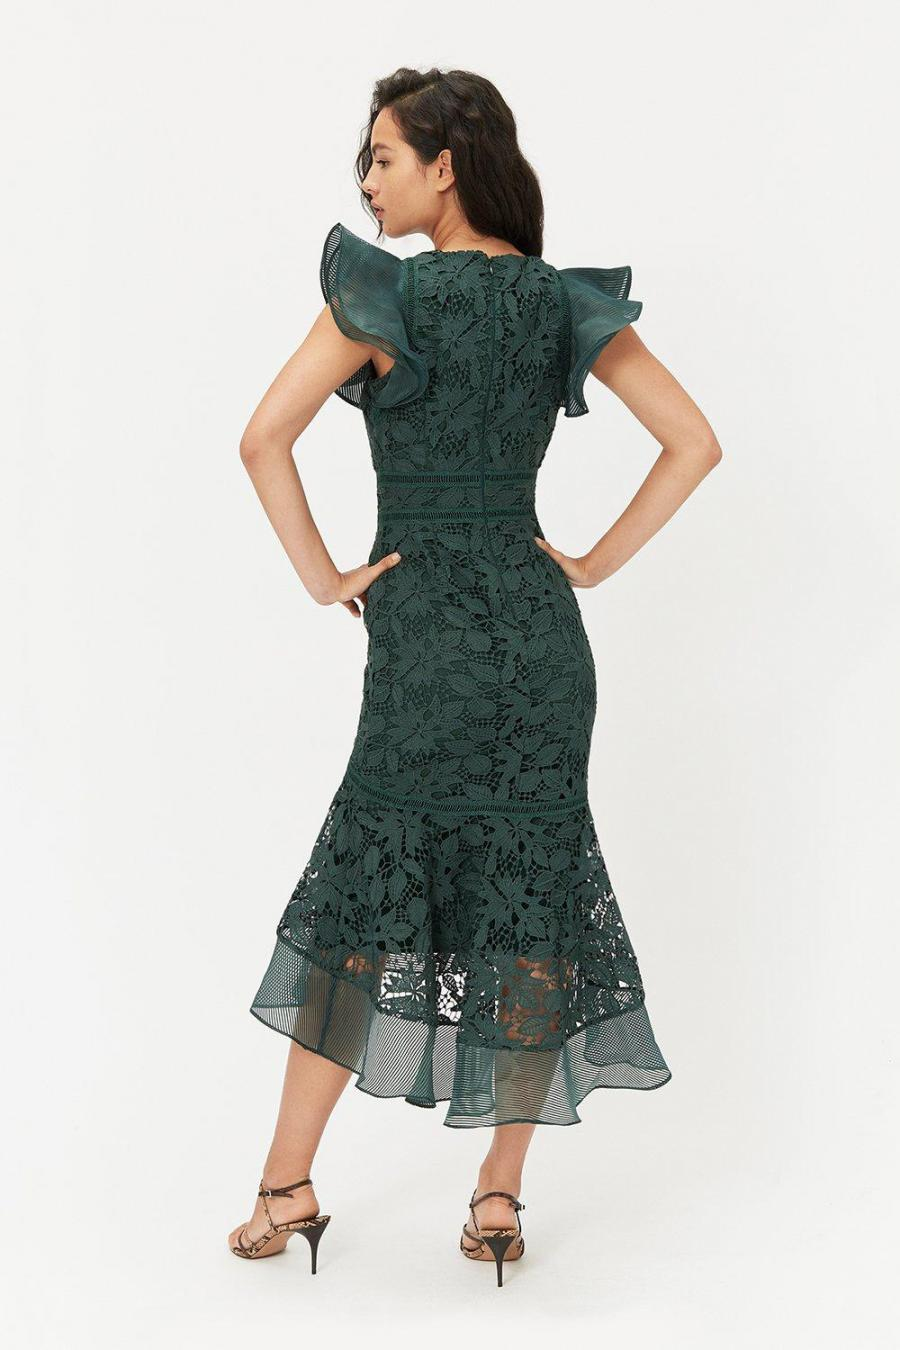 Coast Midi Dresses   Womens Floral Lace Frill Sleeve Dress Forest